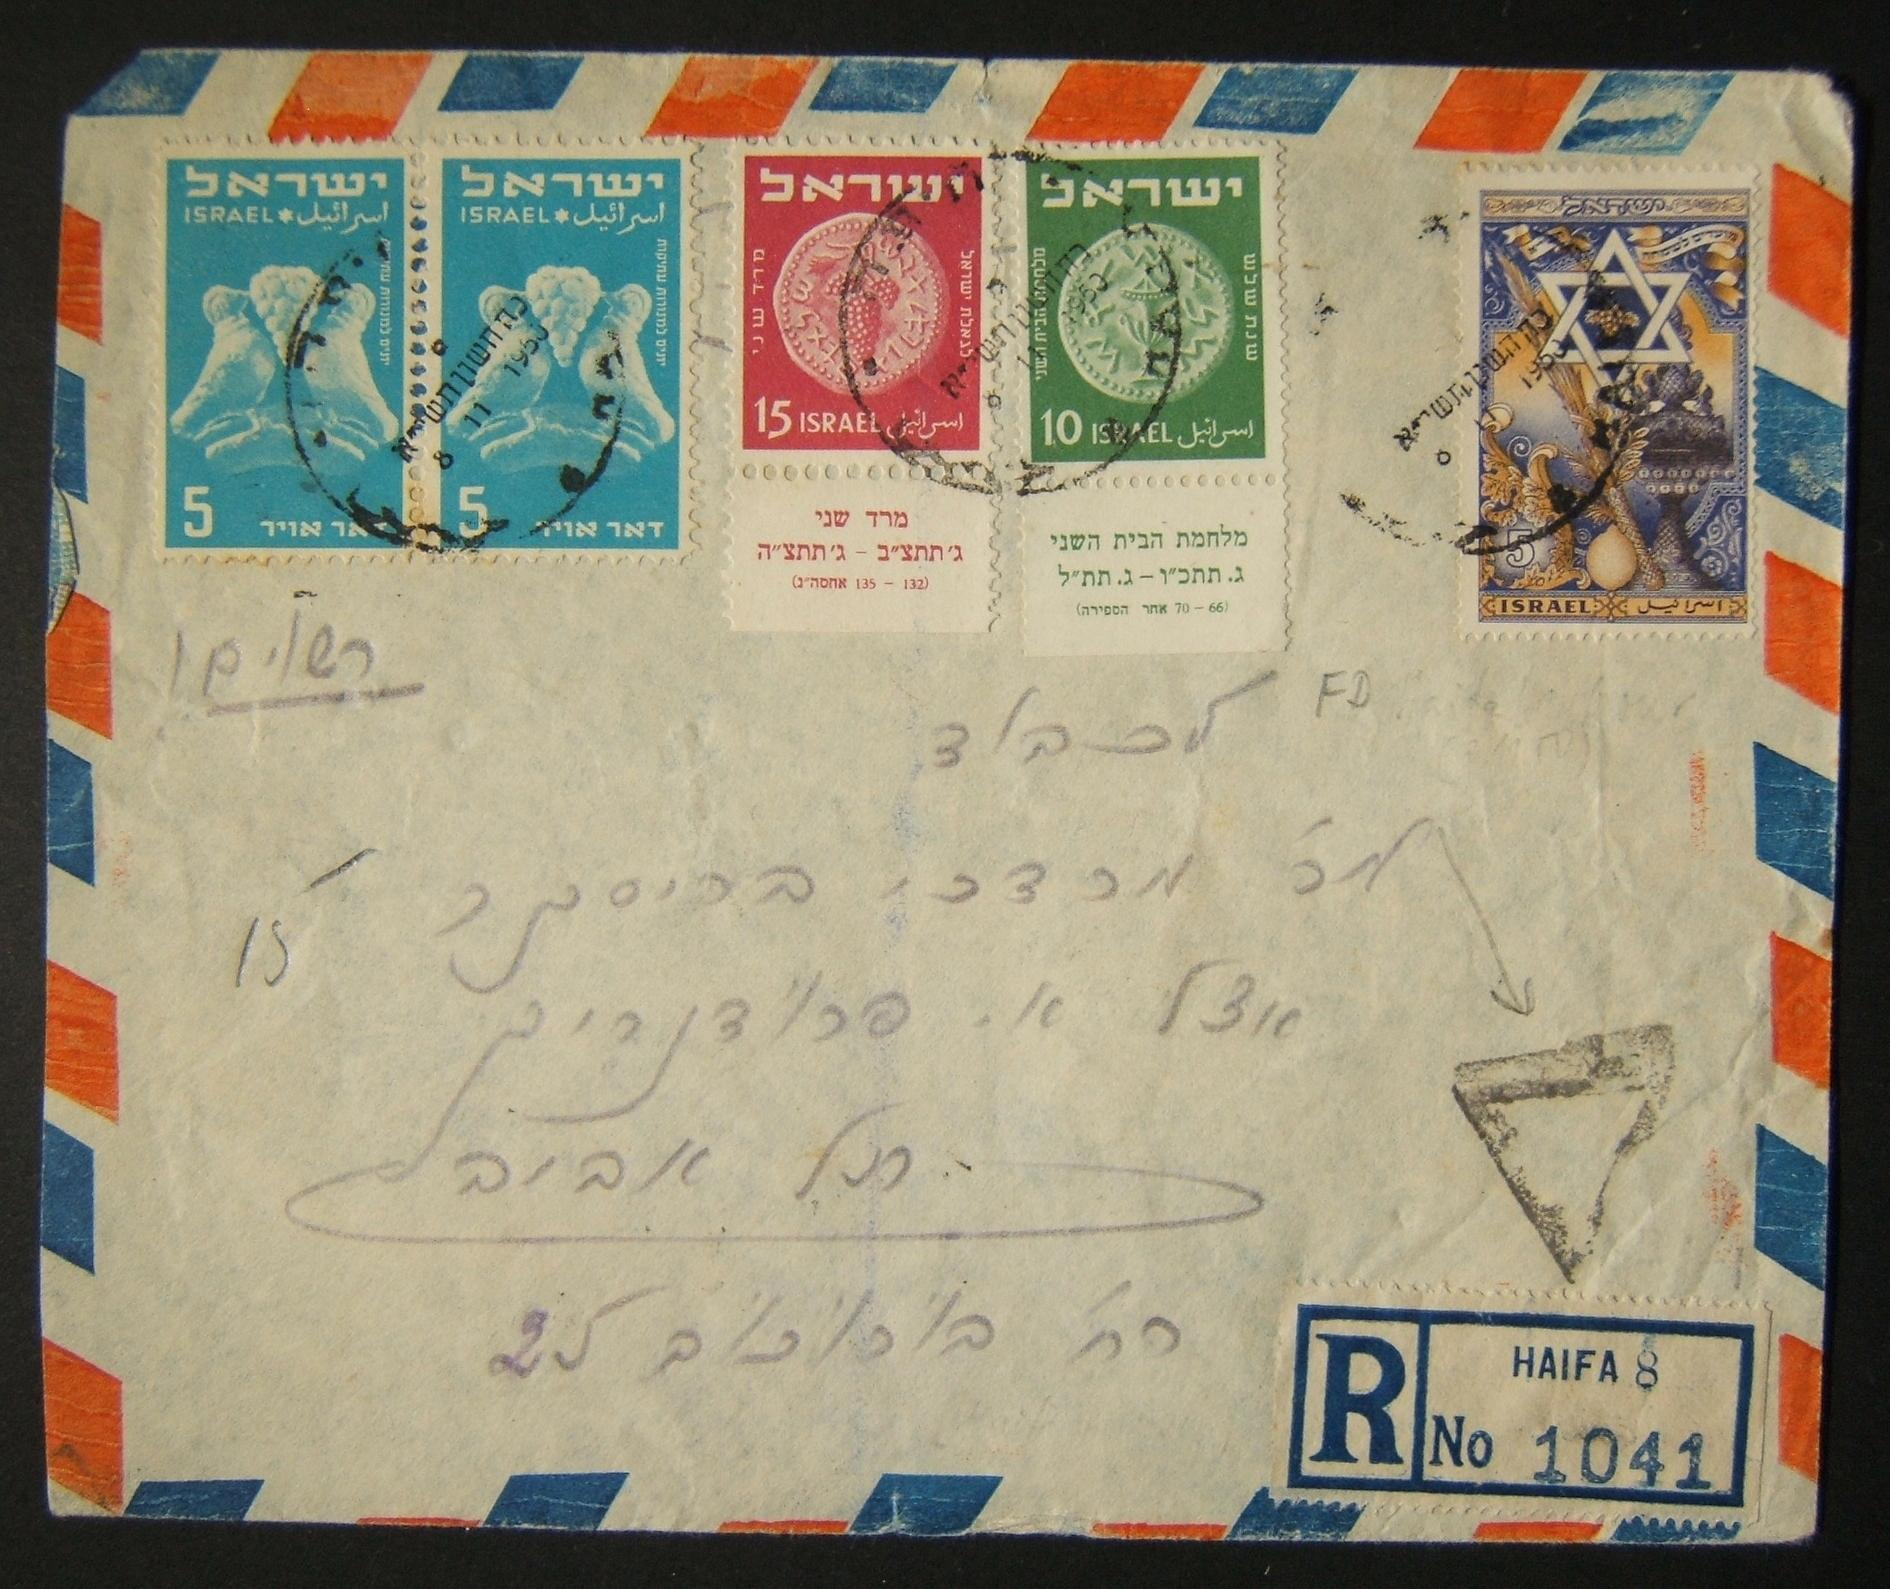 1950 1st airmail / PO's, rates & routes: 8-11-1950